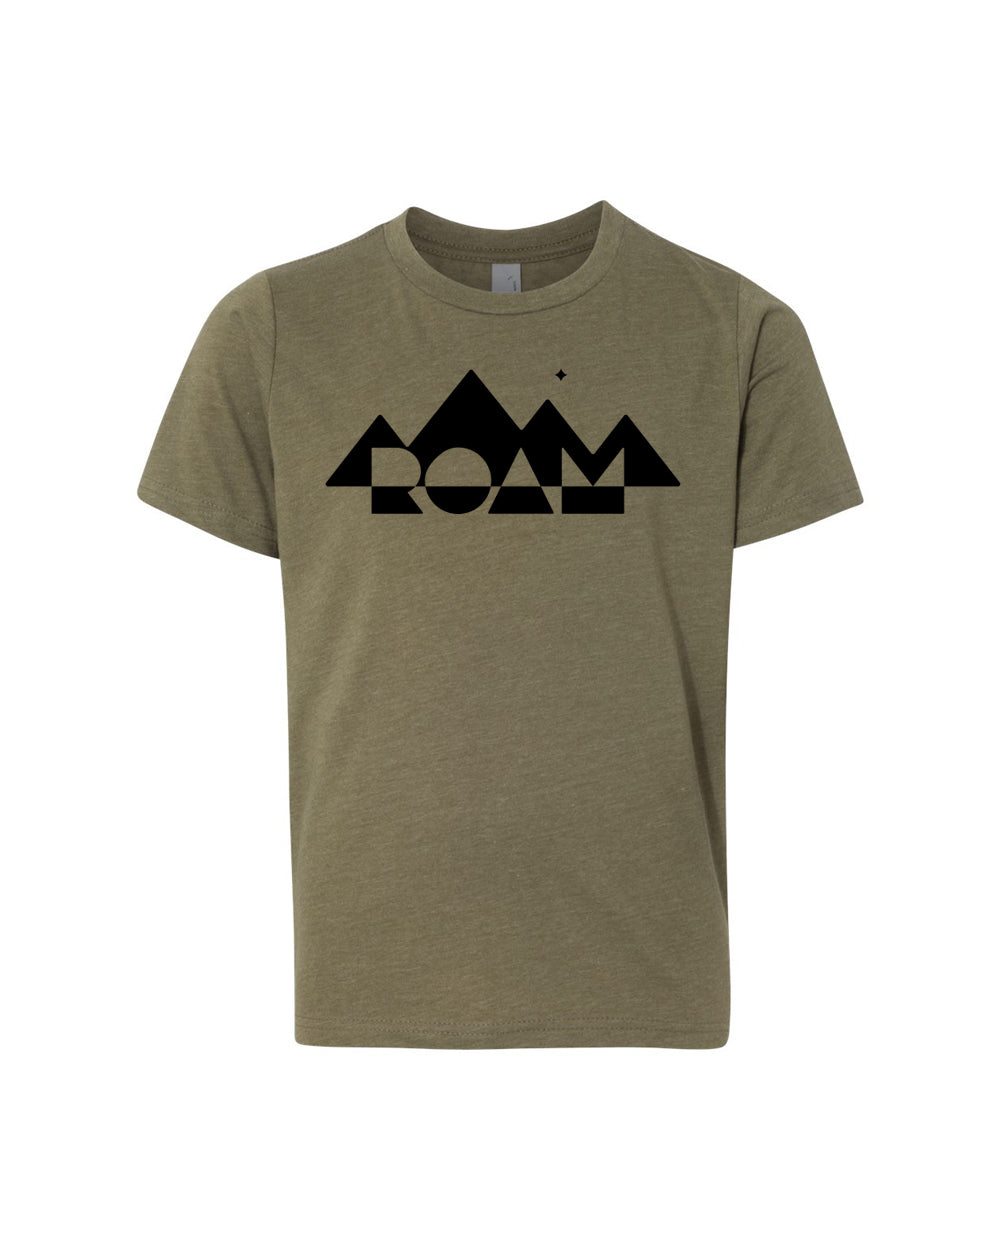 Youth Mirrored Mountain Tee - <br> Military Green